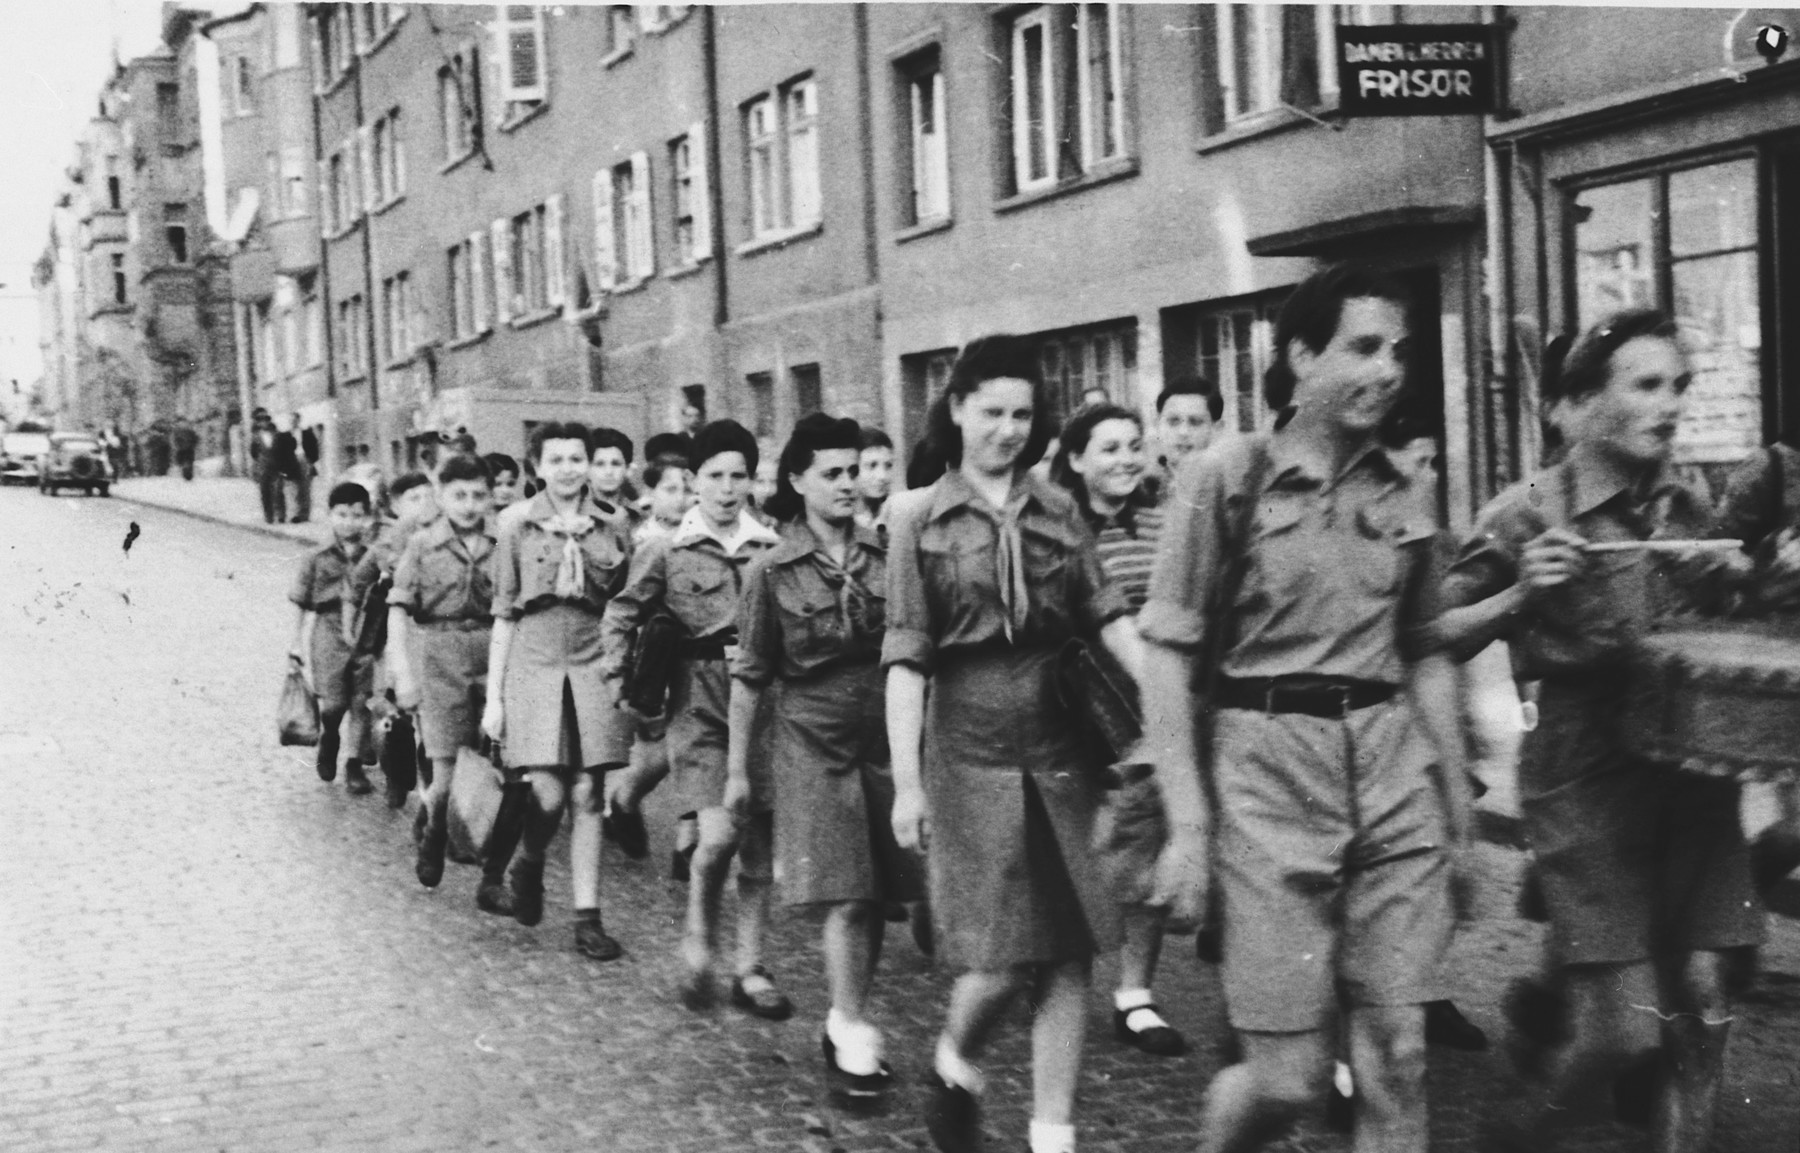 Members of Hashomer Hatzair march in a Zionist demonstration through a commercial street in Stuttgart.  Among those pictured are Basia Kac, second from the left, and Hadasa Eisenberg, fourth from the left.